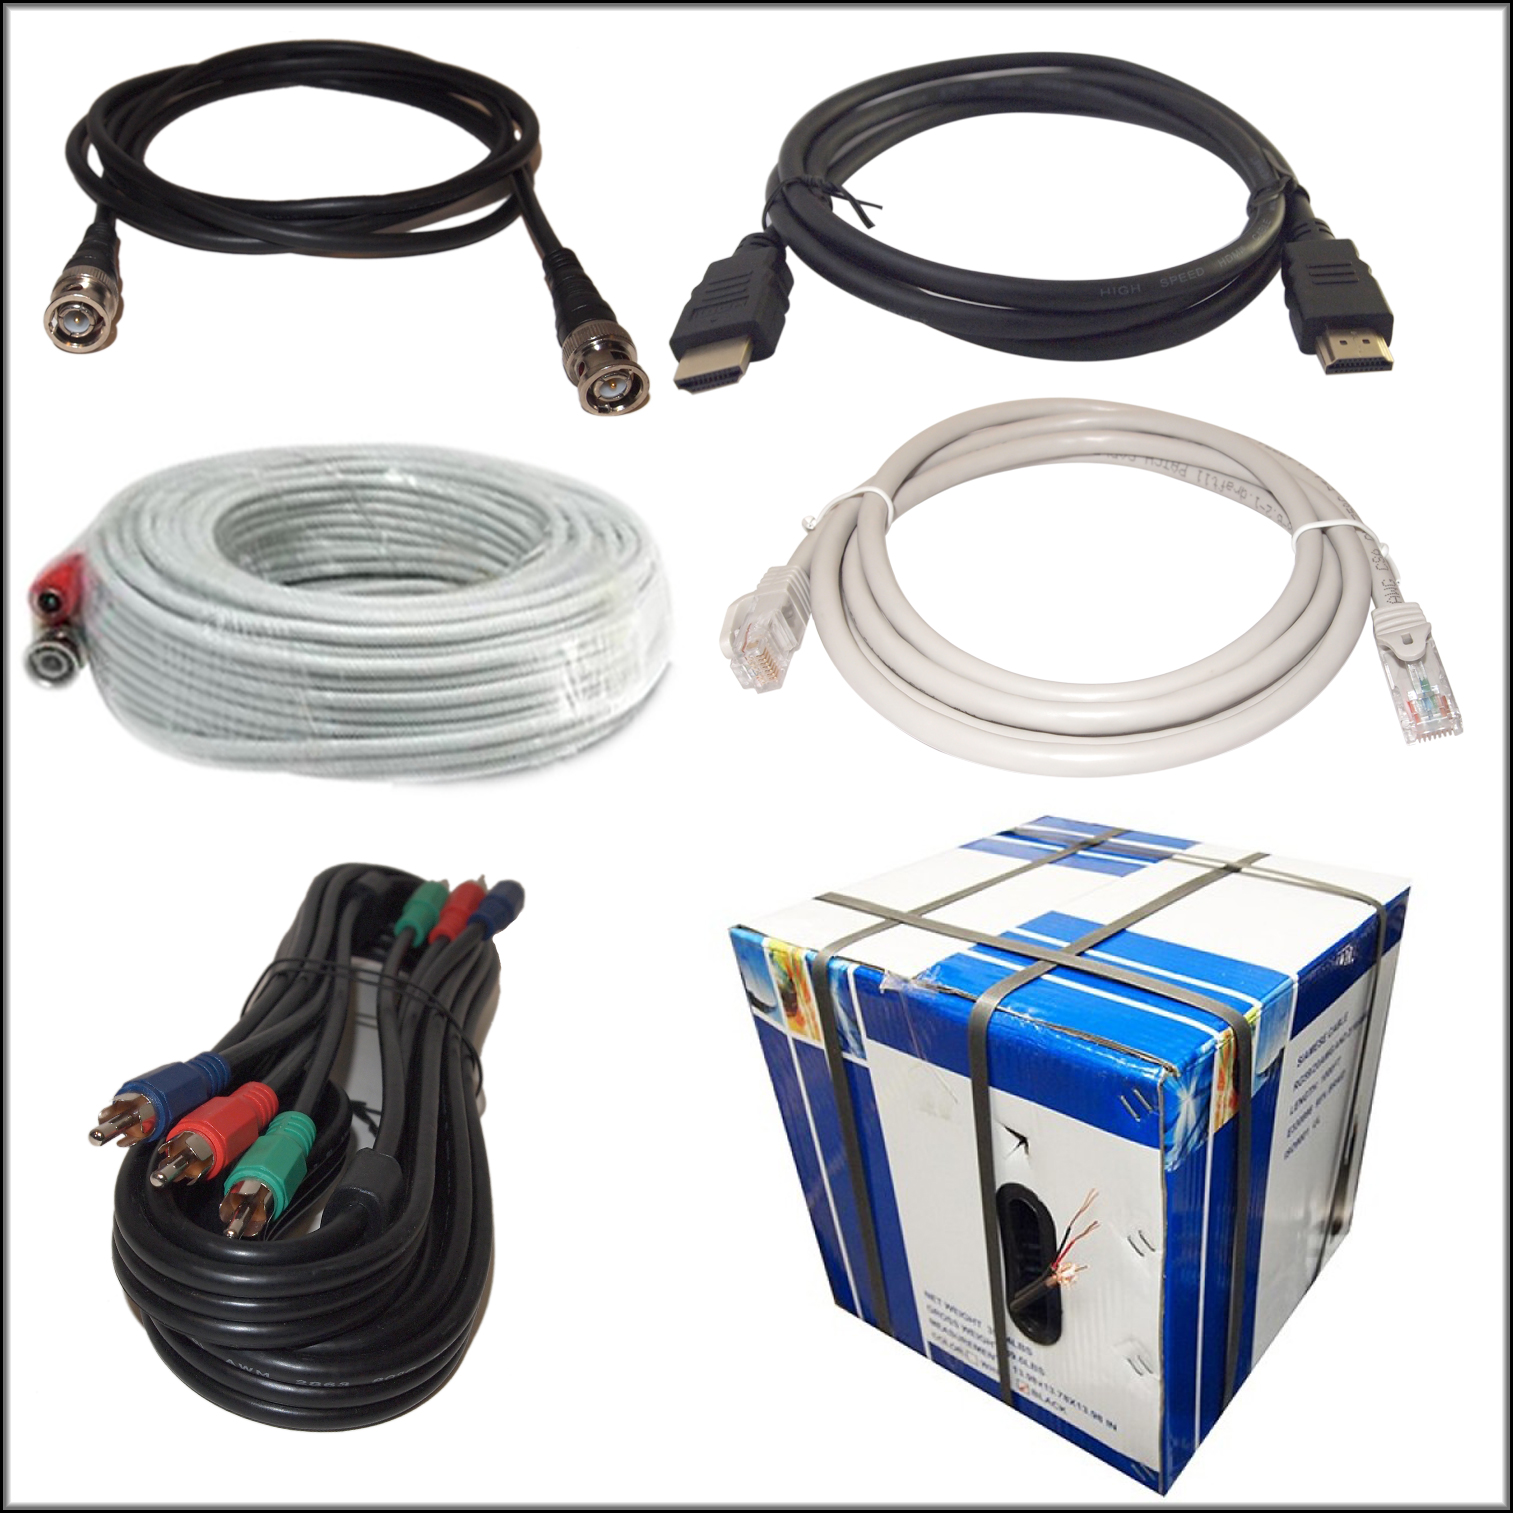 Evertech Cctv Security Cameras And Dvr Systems Usa Wiring Guide Tester Cables